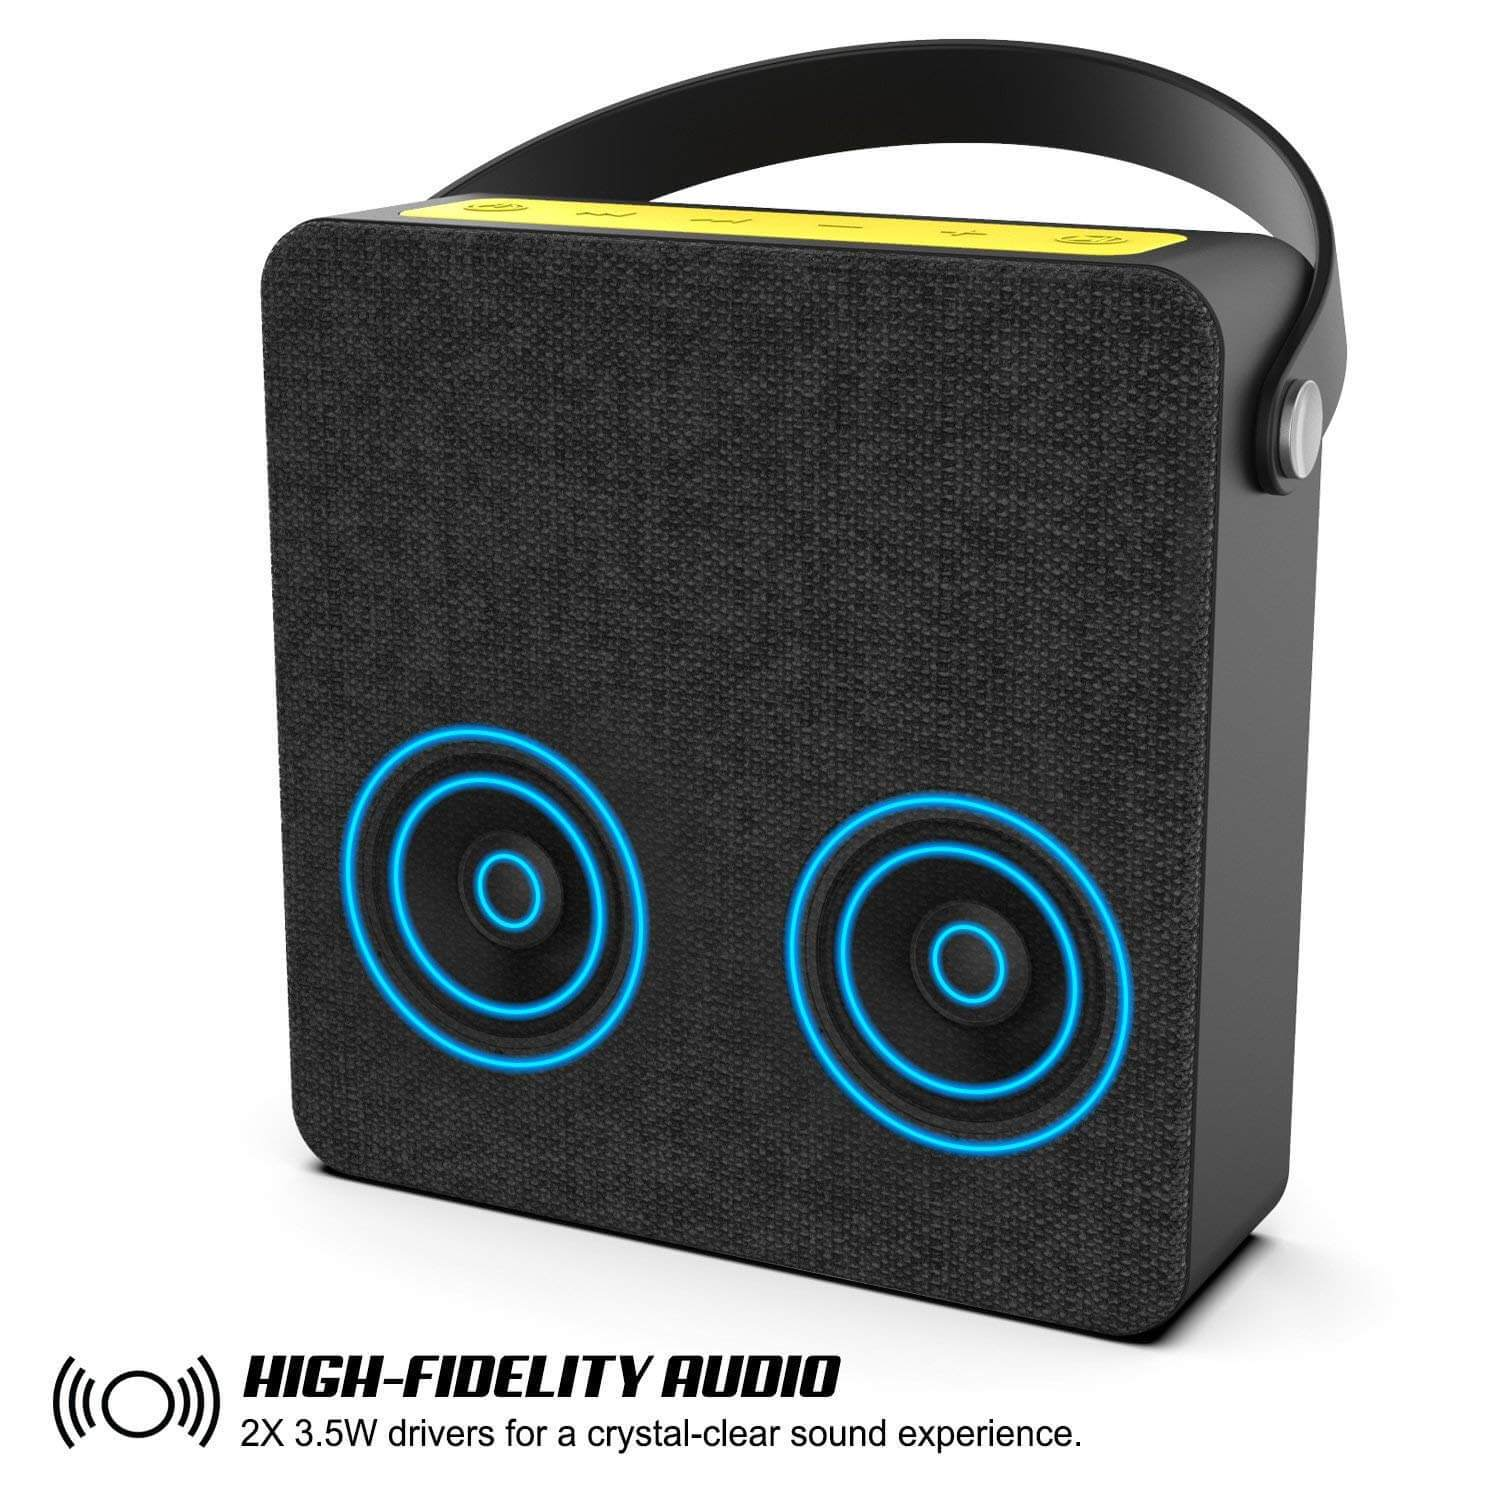 PUNKBOX Portable Wireless Bluetooth Speaker, Loud & Powerful for iPhoneAndroid [black]